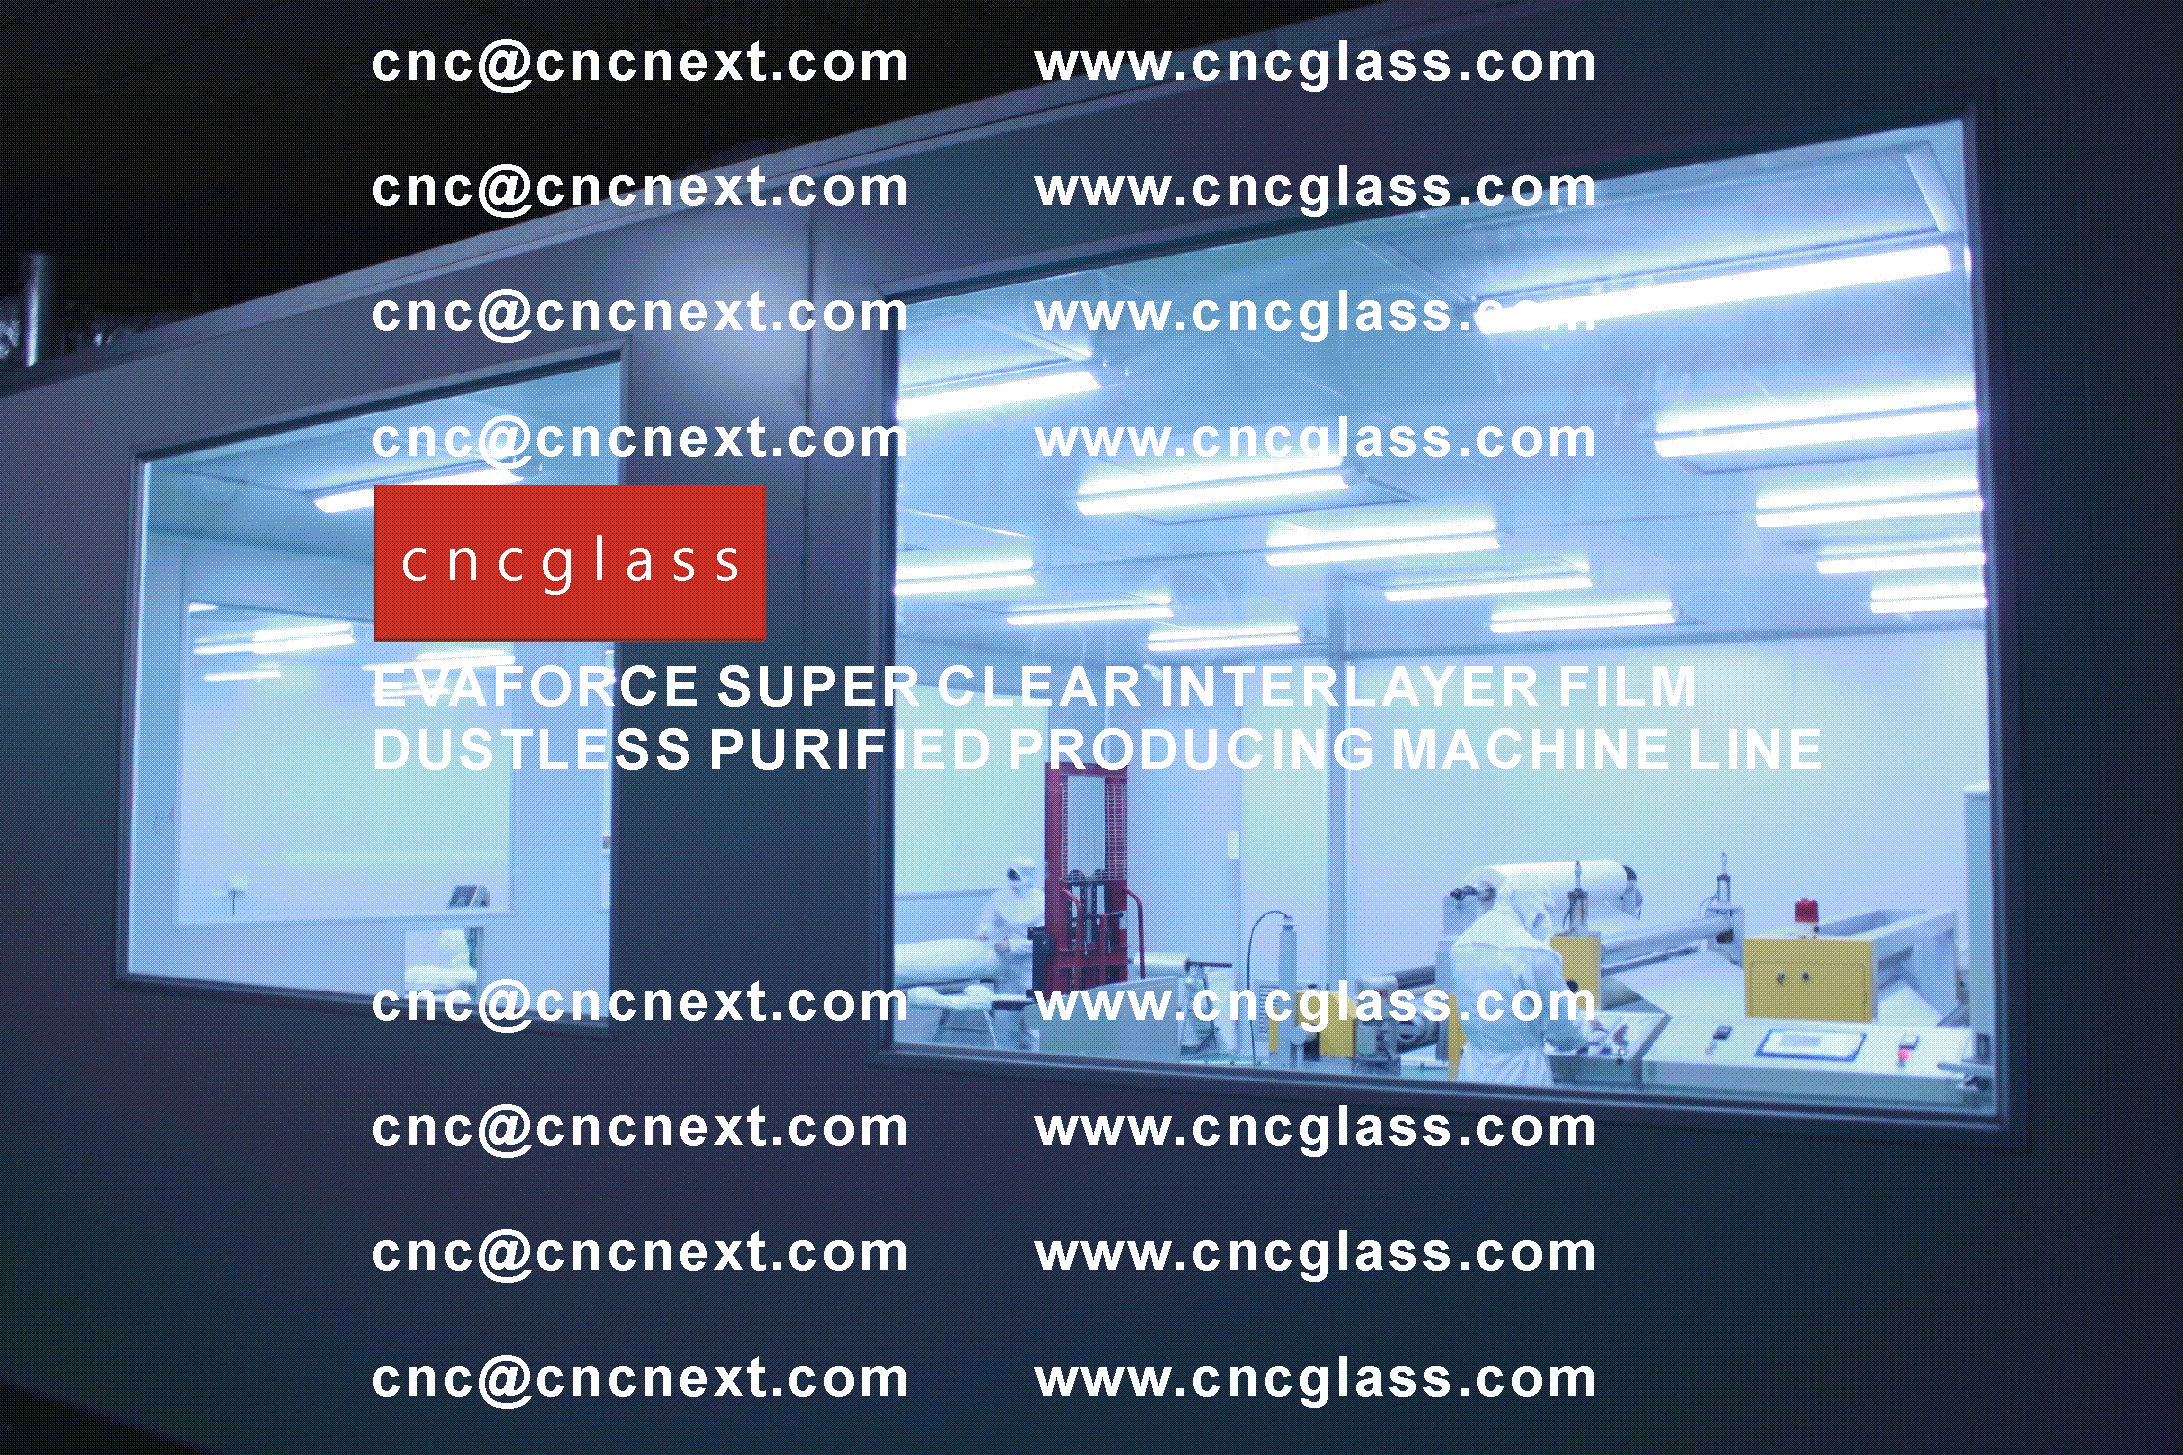 006 EVAFORCE SUPER CLEAR INTERLAYER FILM PRODUCING MACHINE LINE